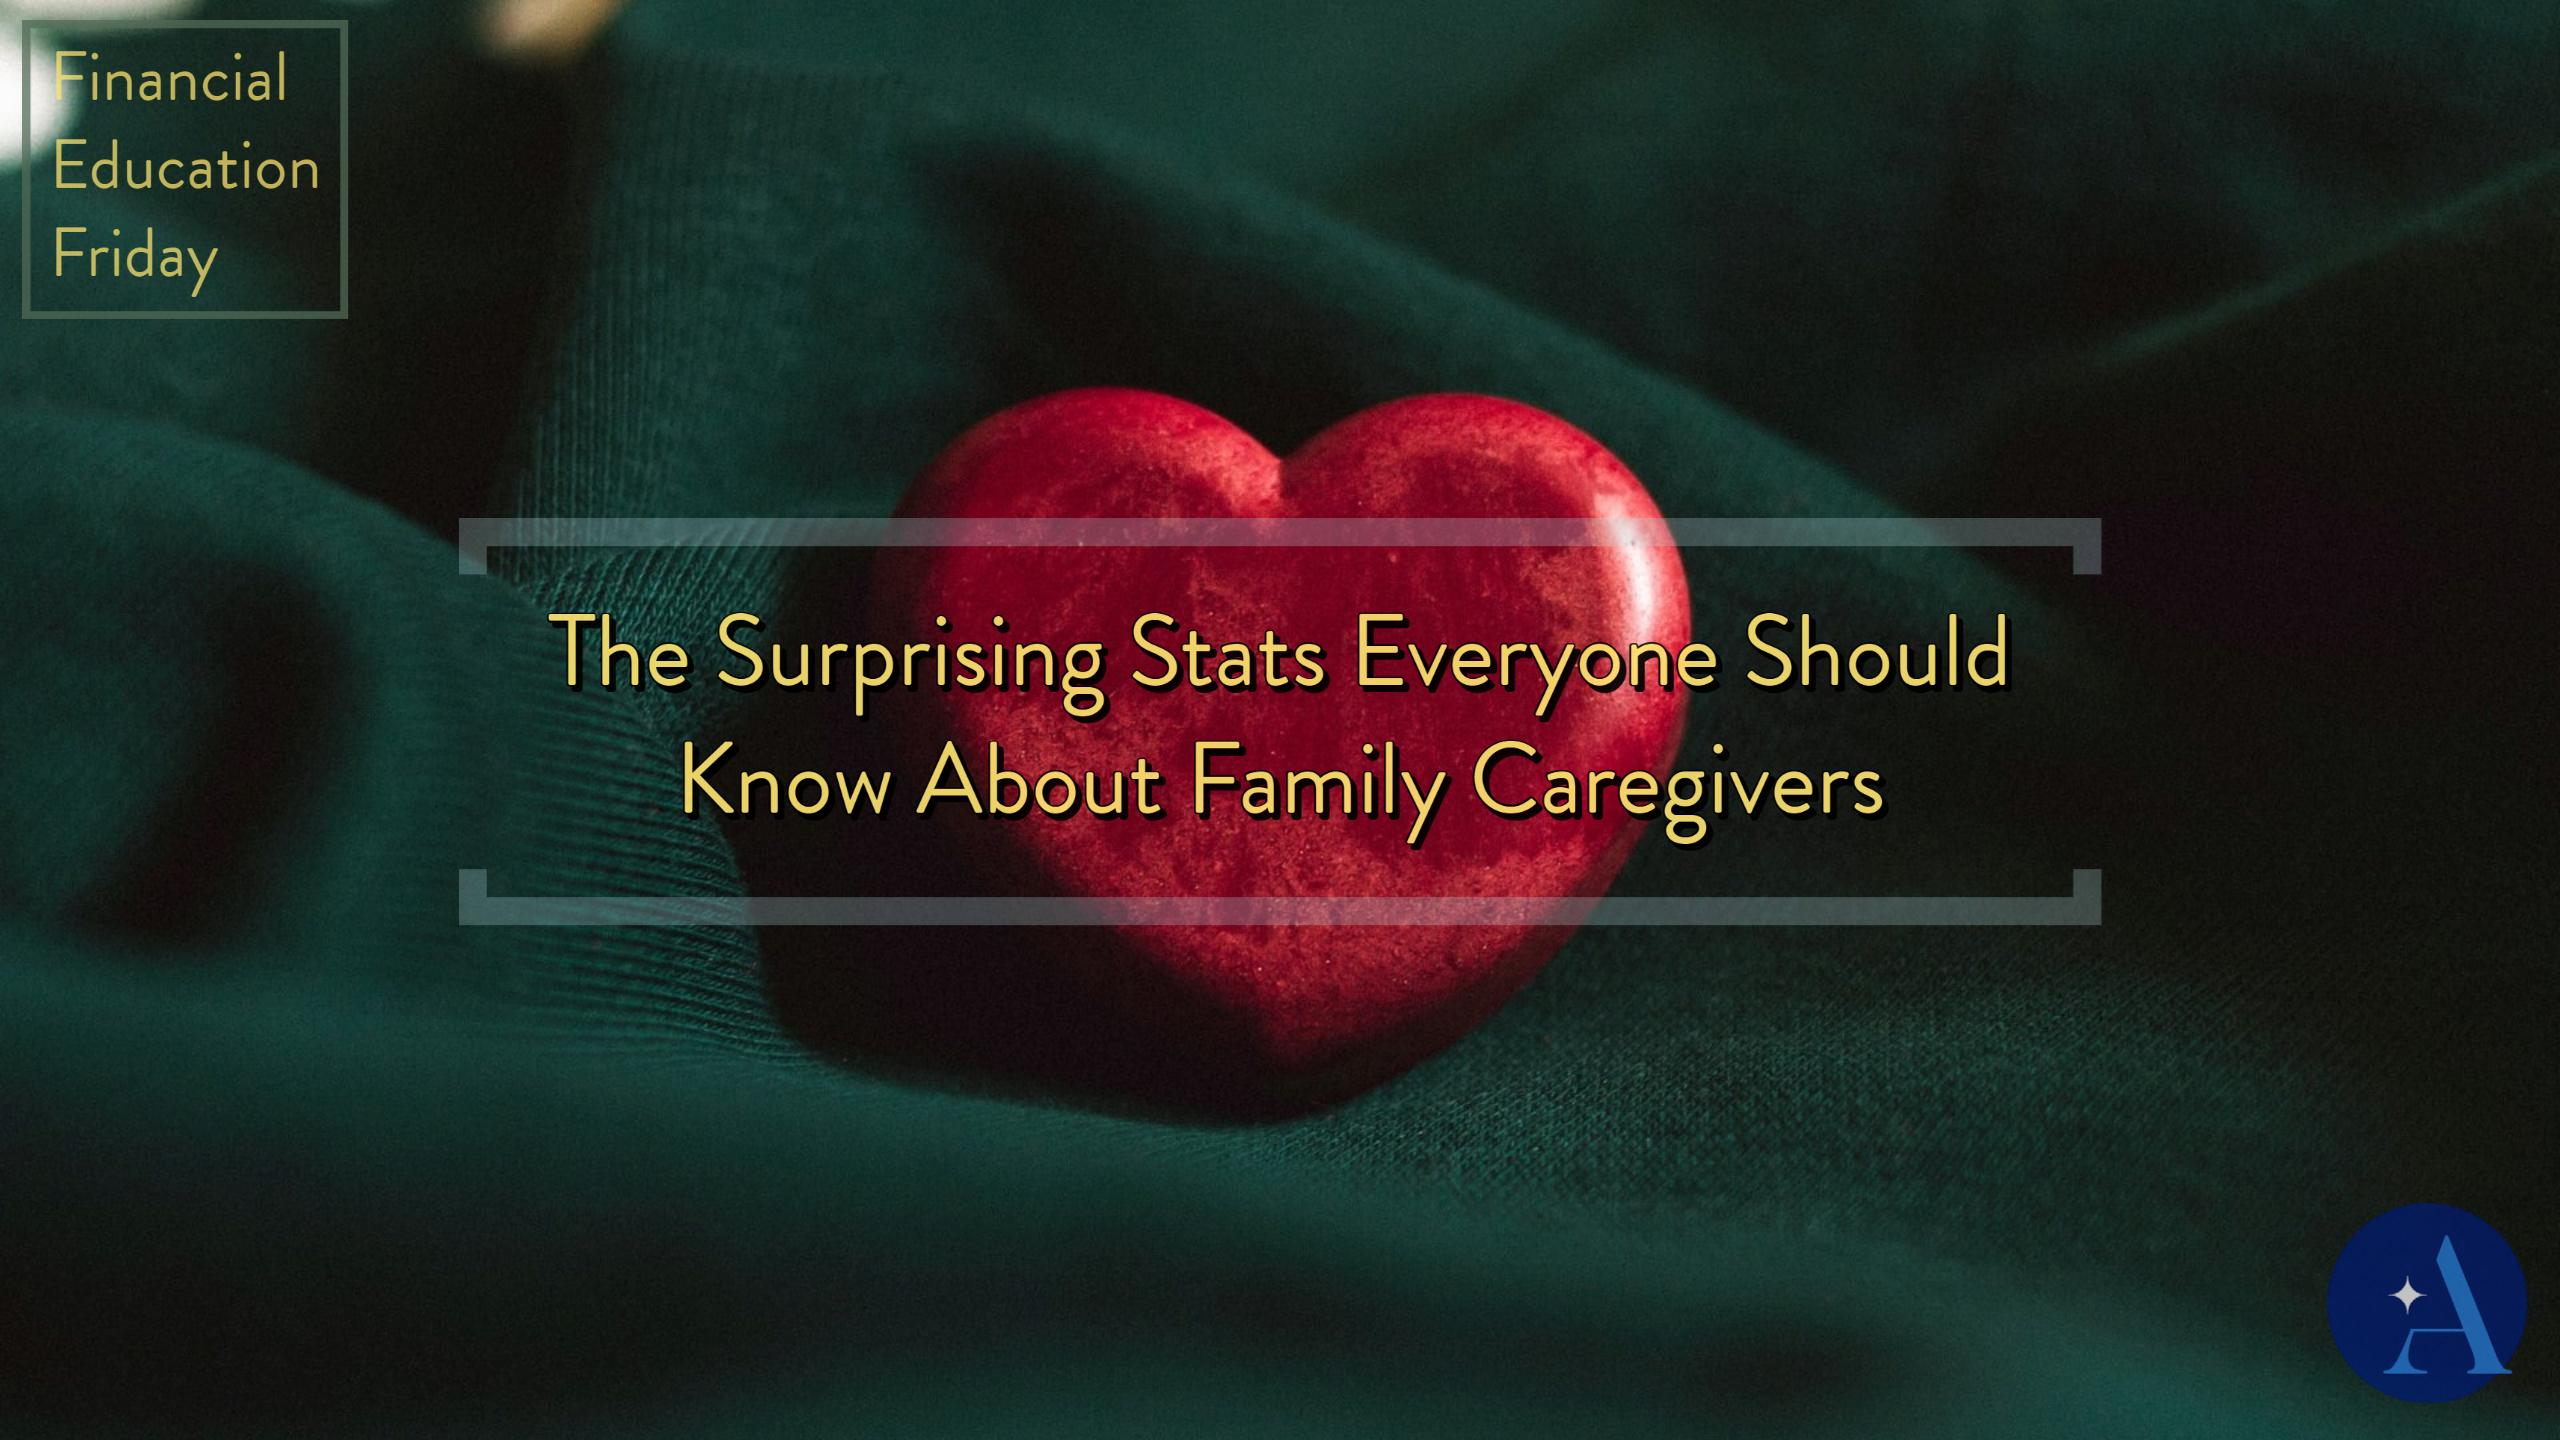 FinEdFriday: The Surprising Stats Everyone Should Know About Family Caregivers Thumbnail